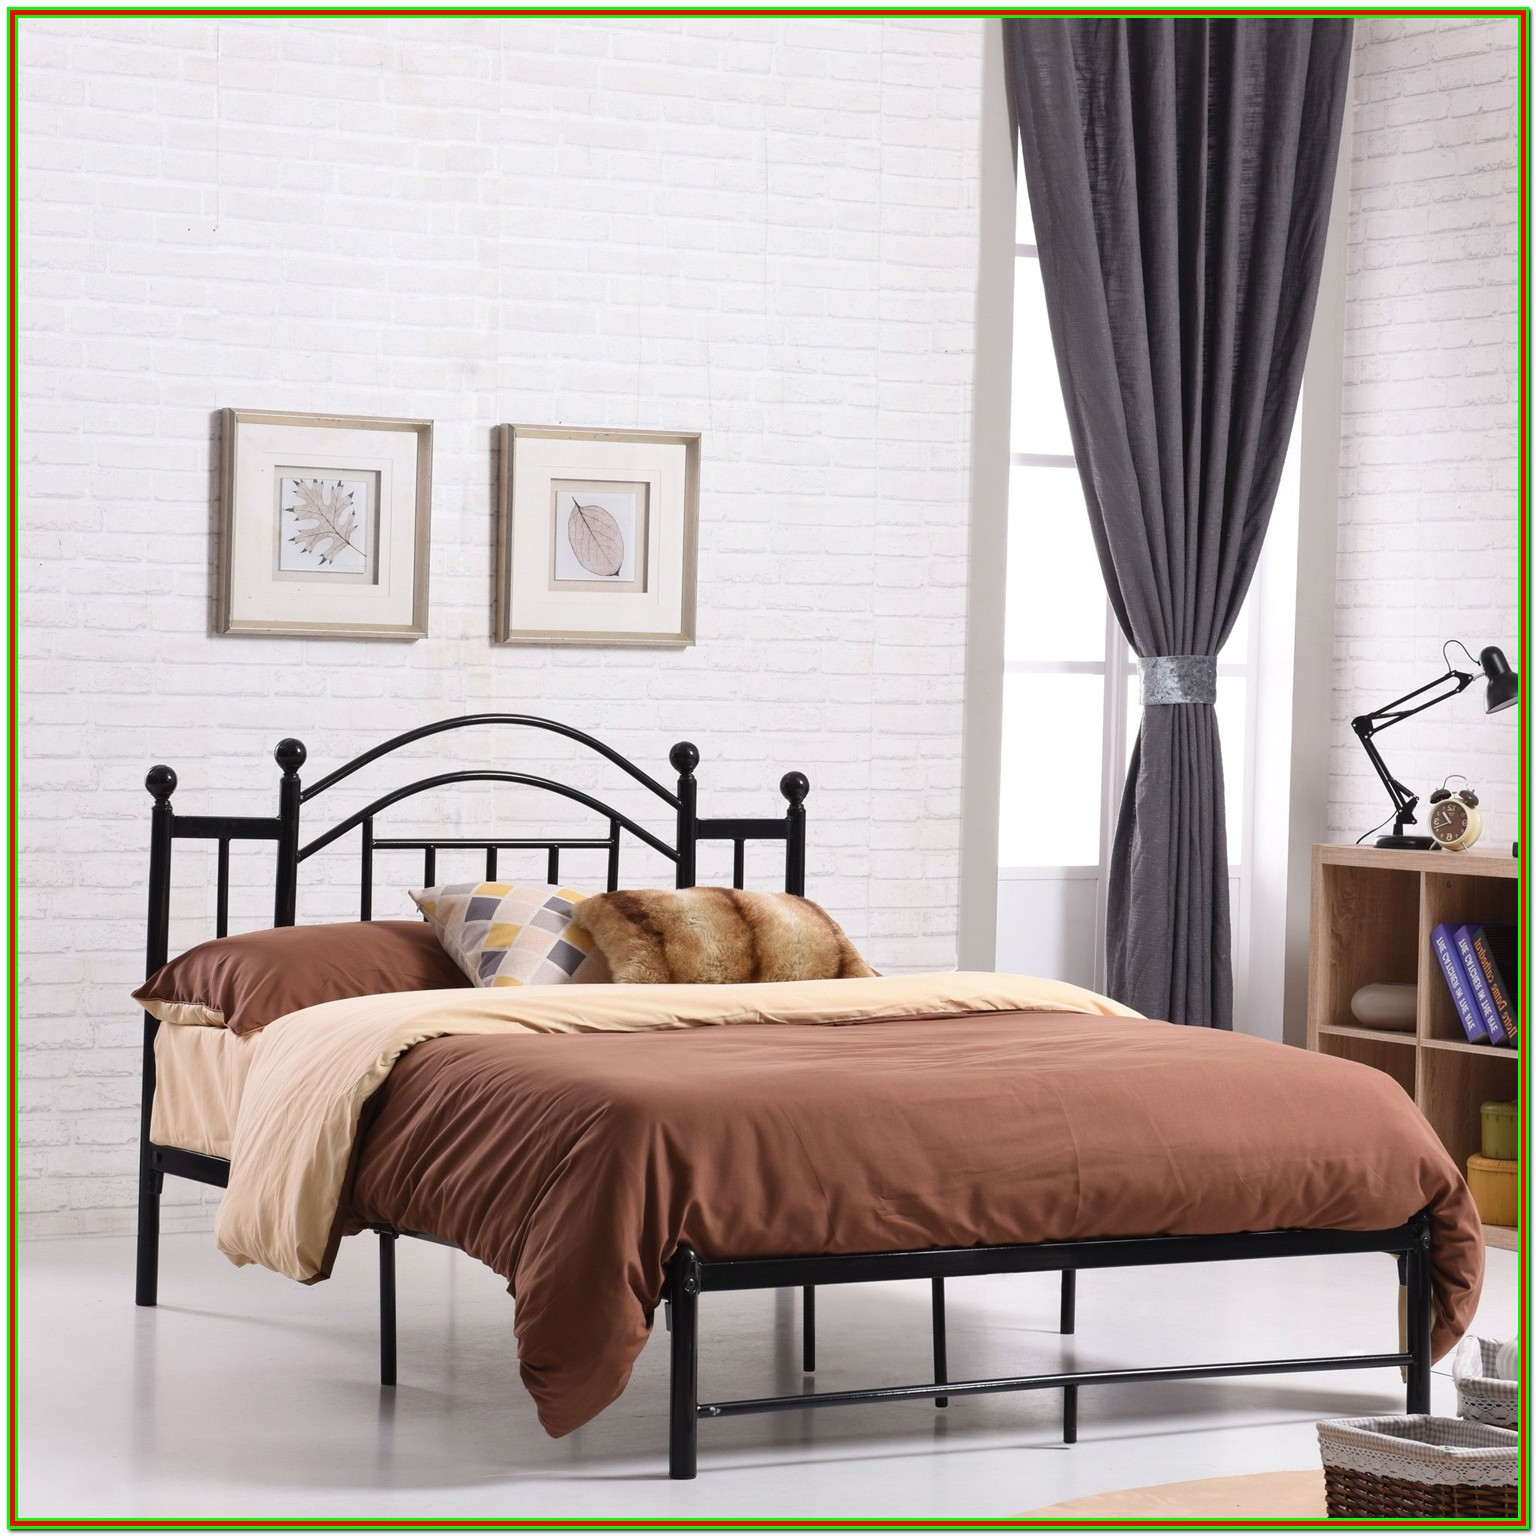 Full Bed Frame With Headboard Black